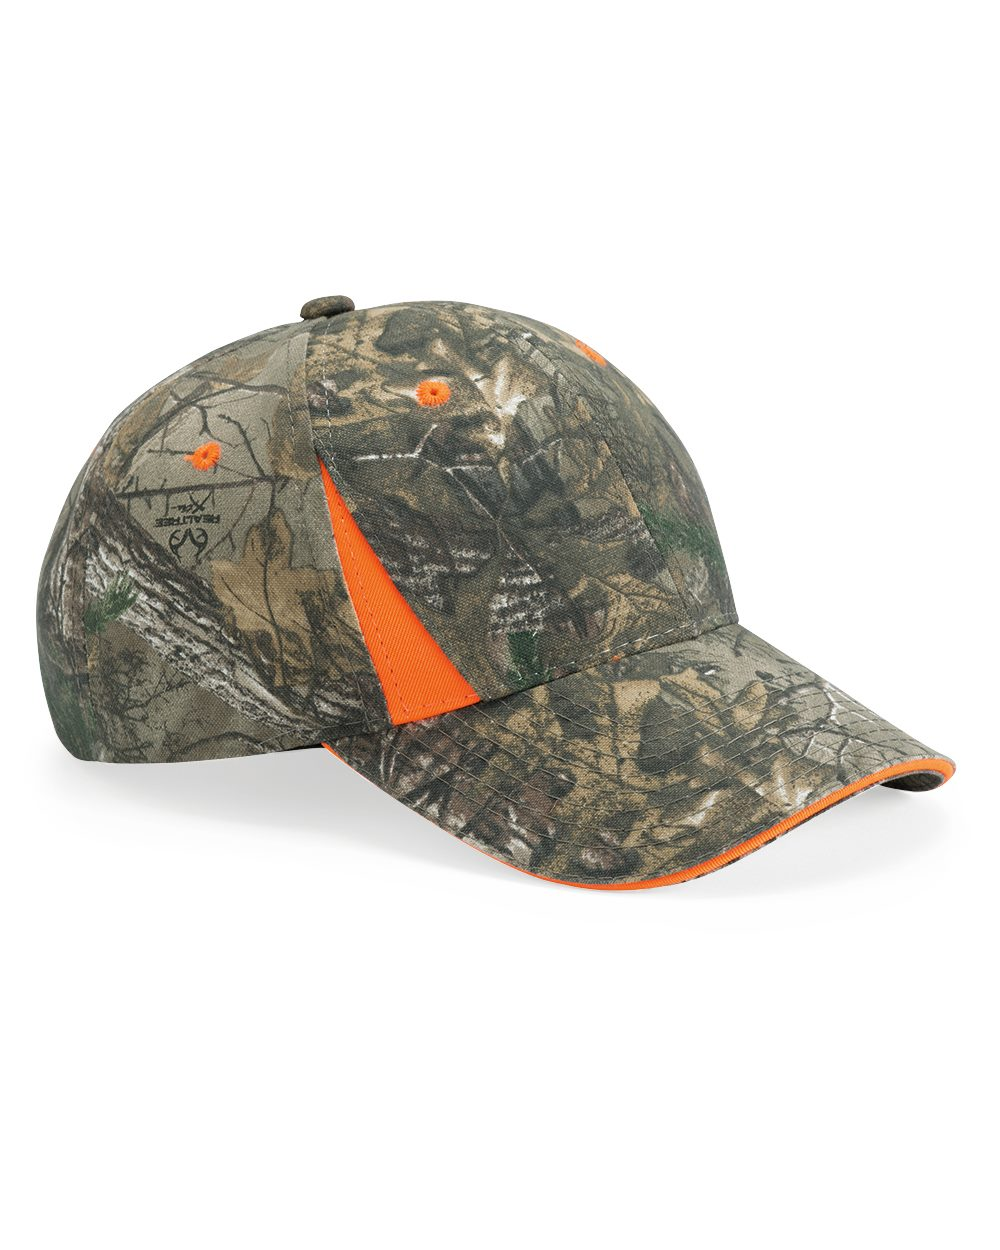 Outdoor Cap CBI305 - Camo Cap With Hi Vis Trim 6d8cb5746868